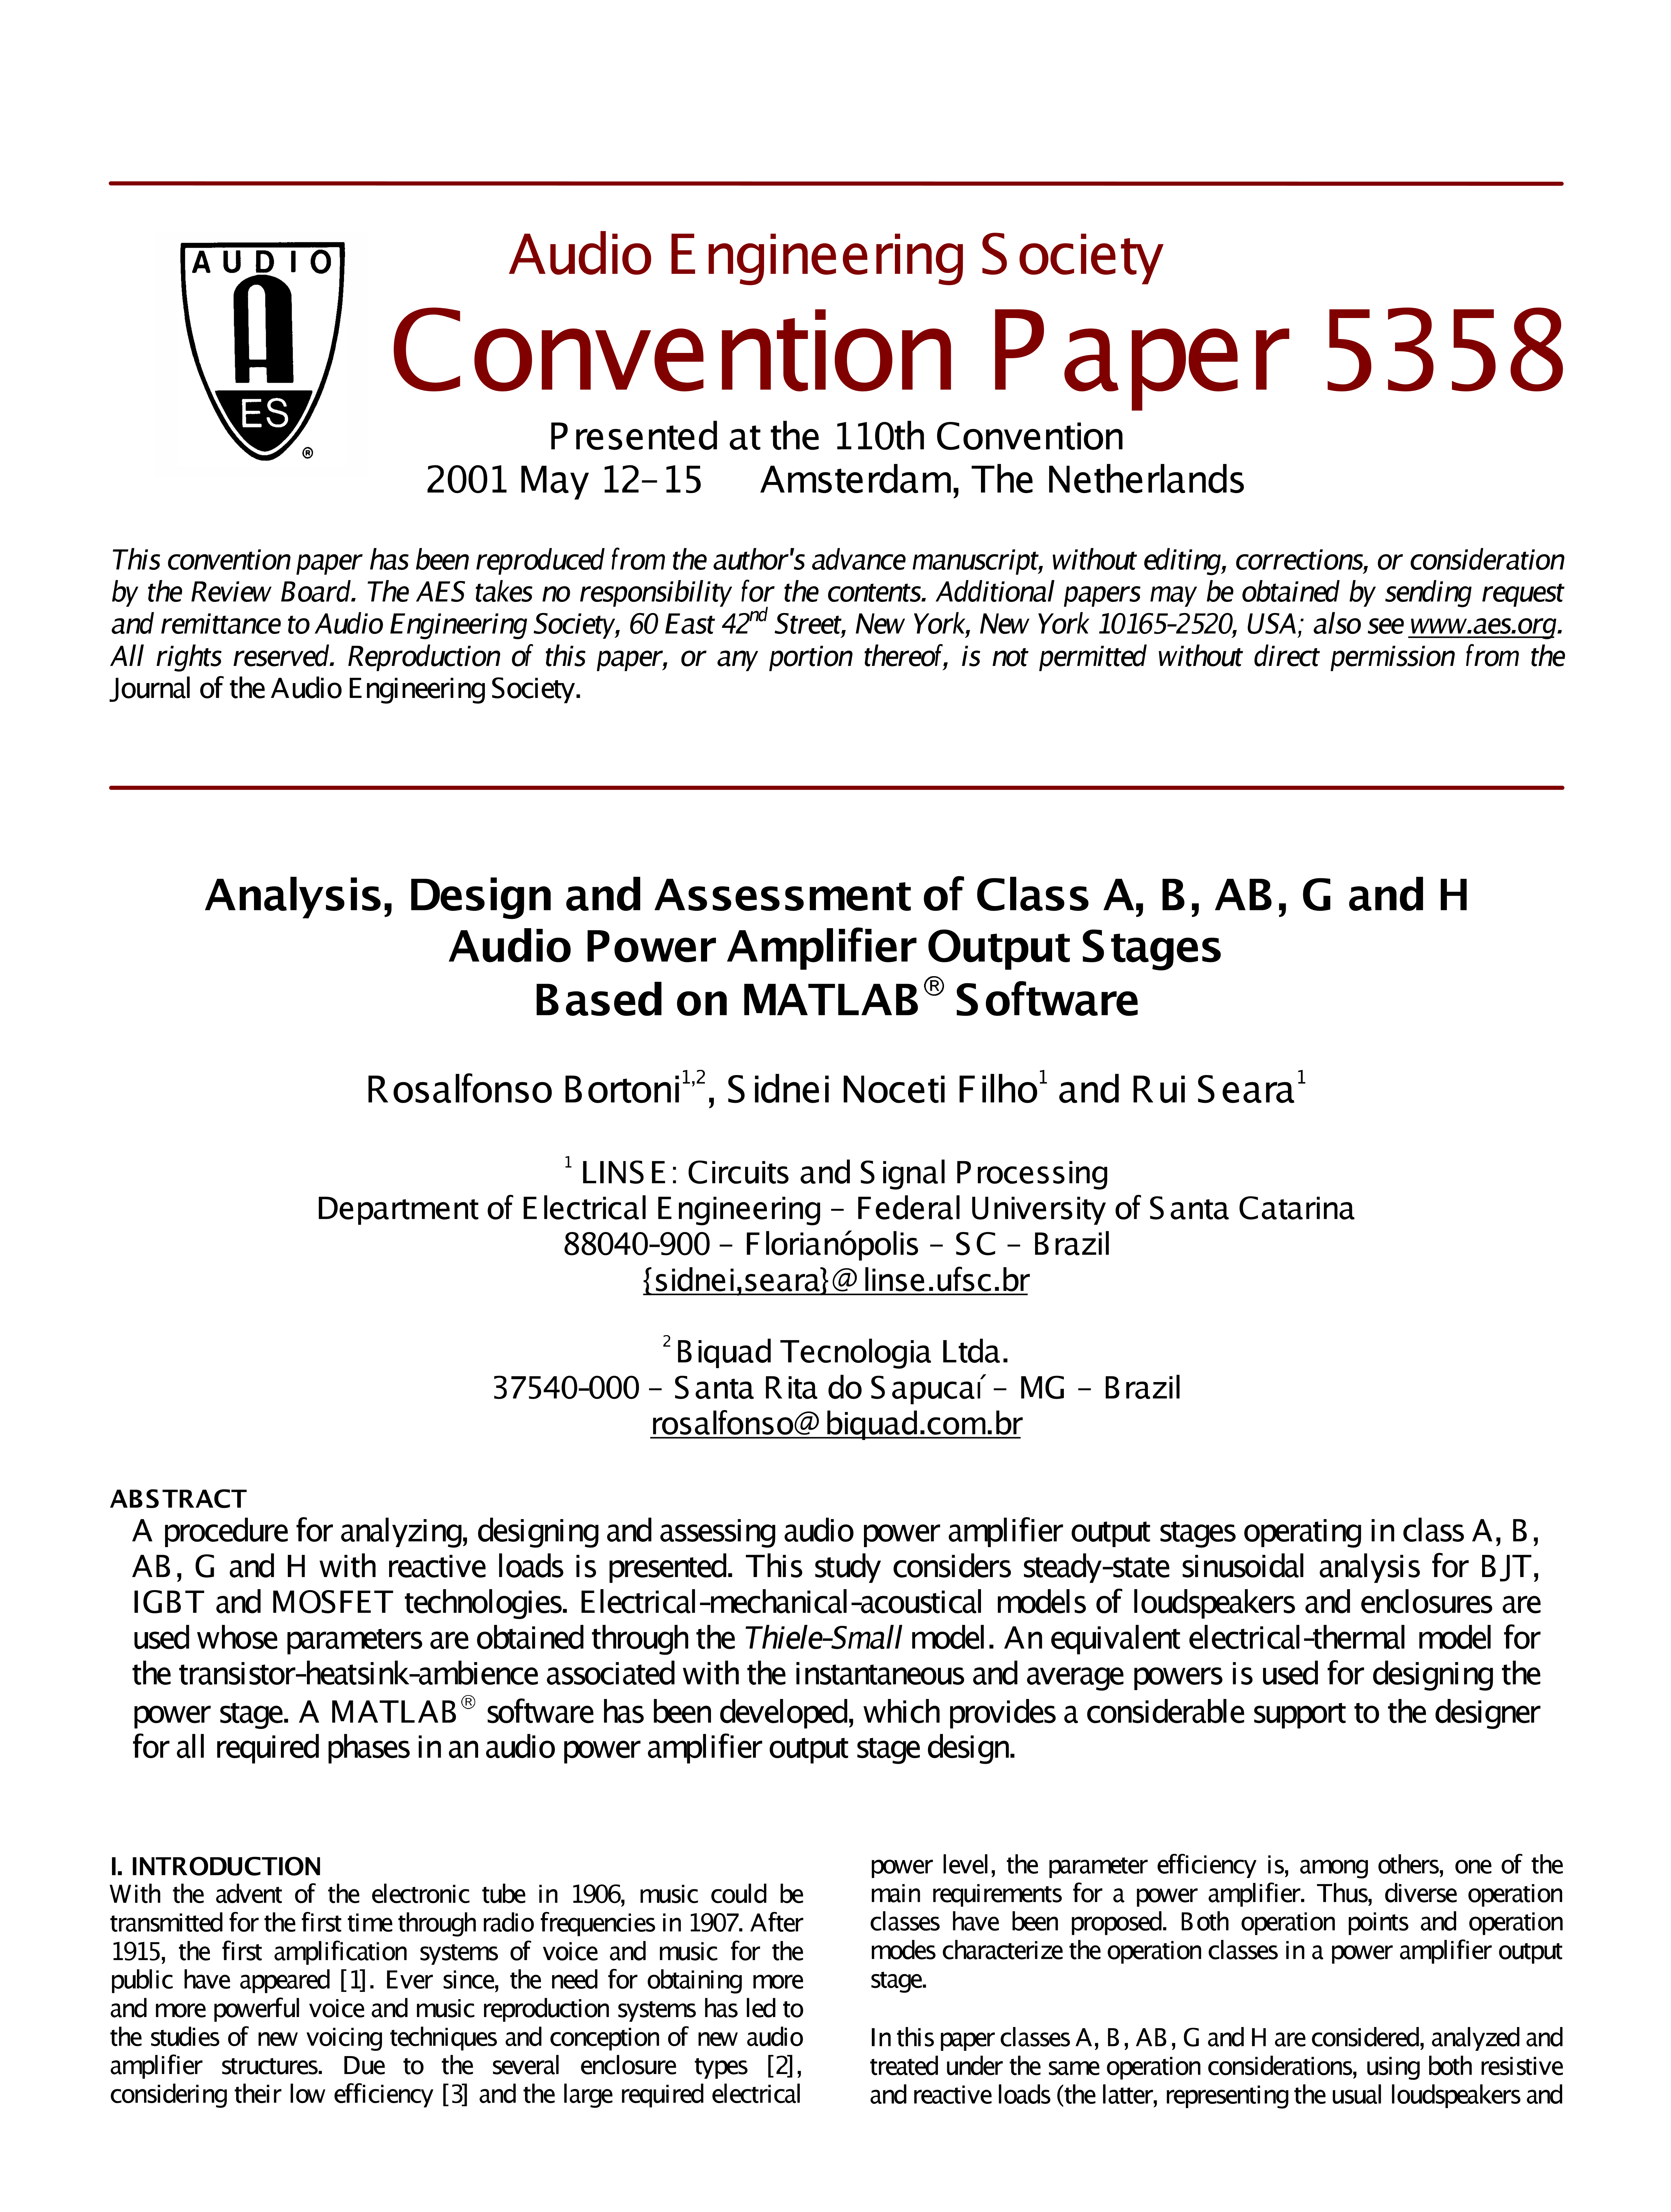 Aes E Library Analysis Design And Assessment Of Class A B Ab G Audio Amplifier Circuit H Power Output Stages Based On Matlab Software